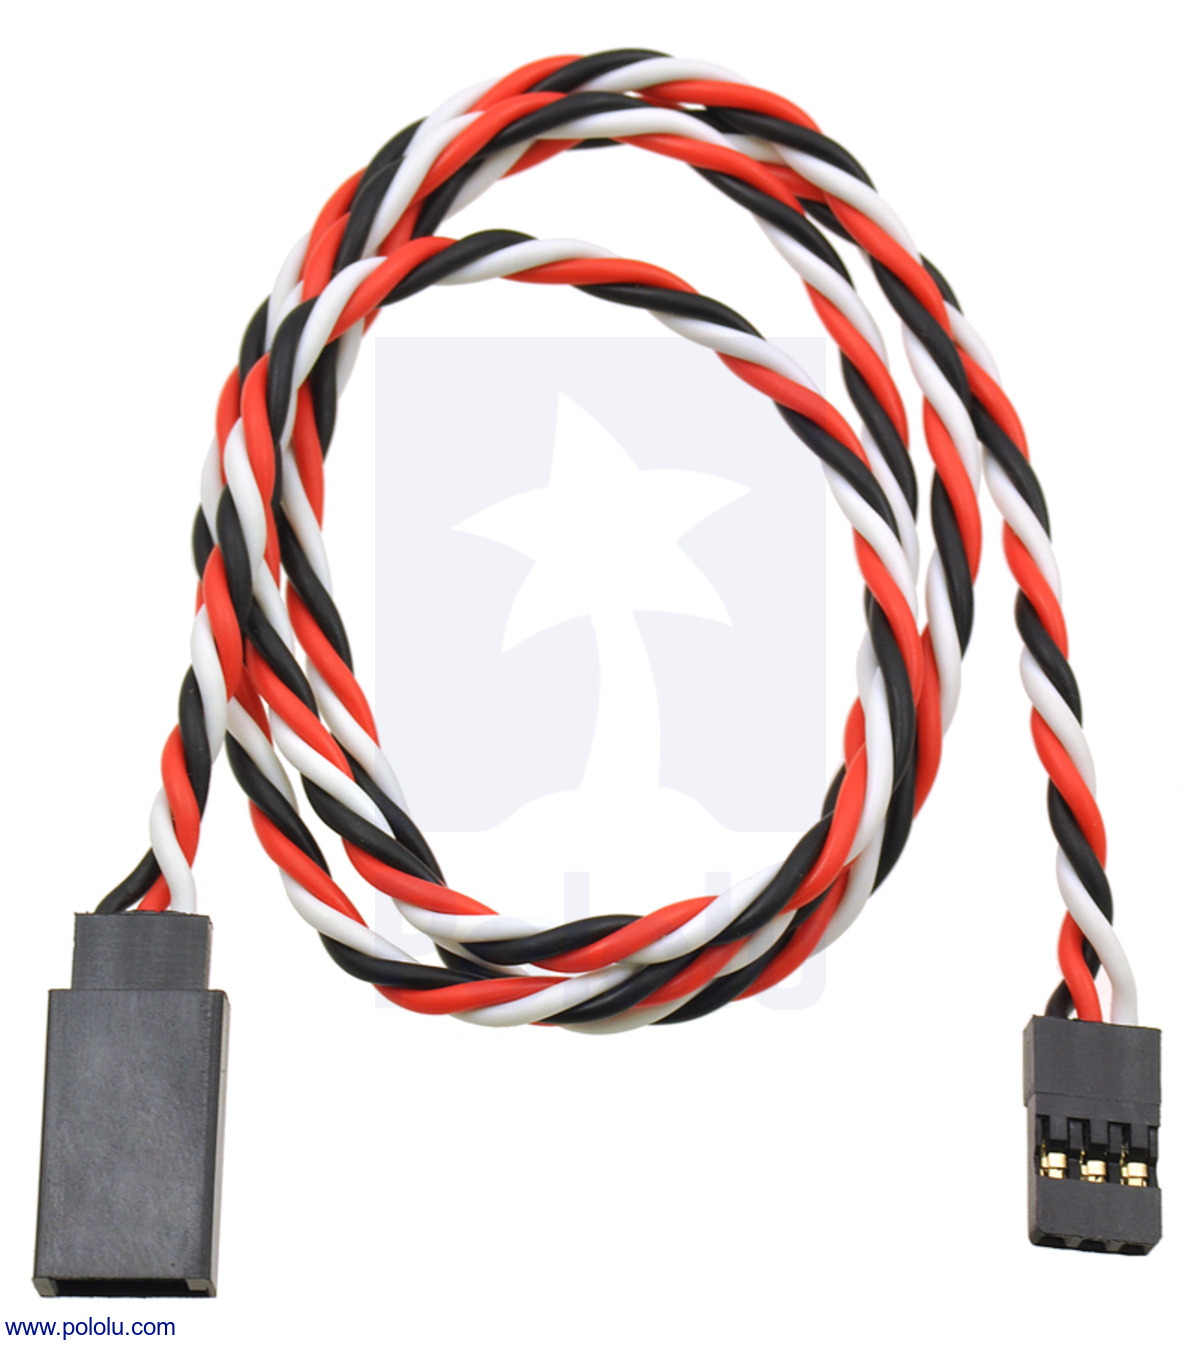 Pololu - Twisted Servo Extension Cable 24\